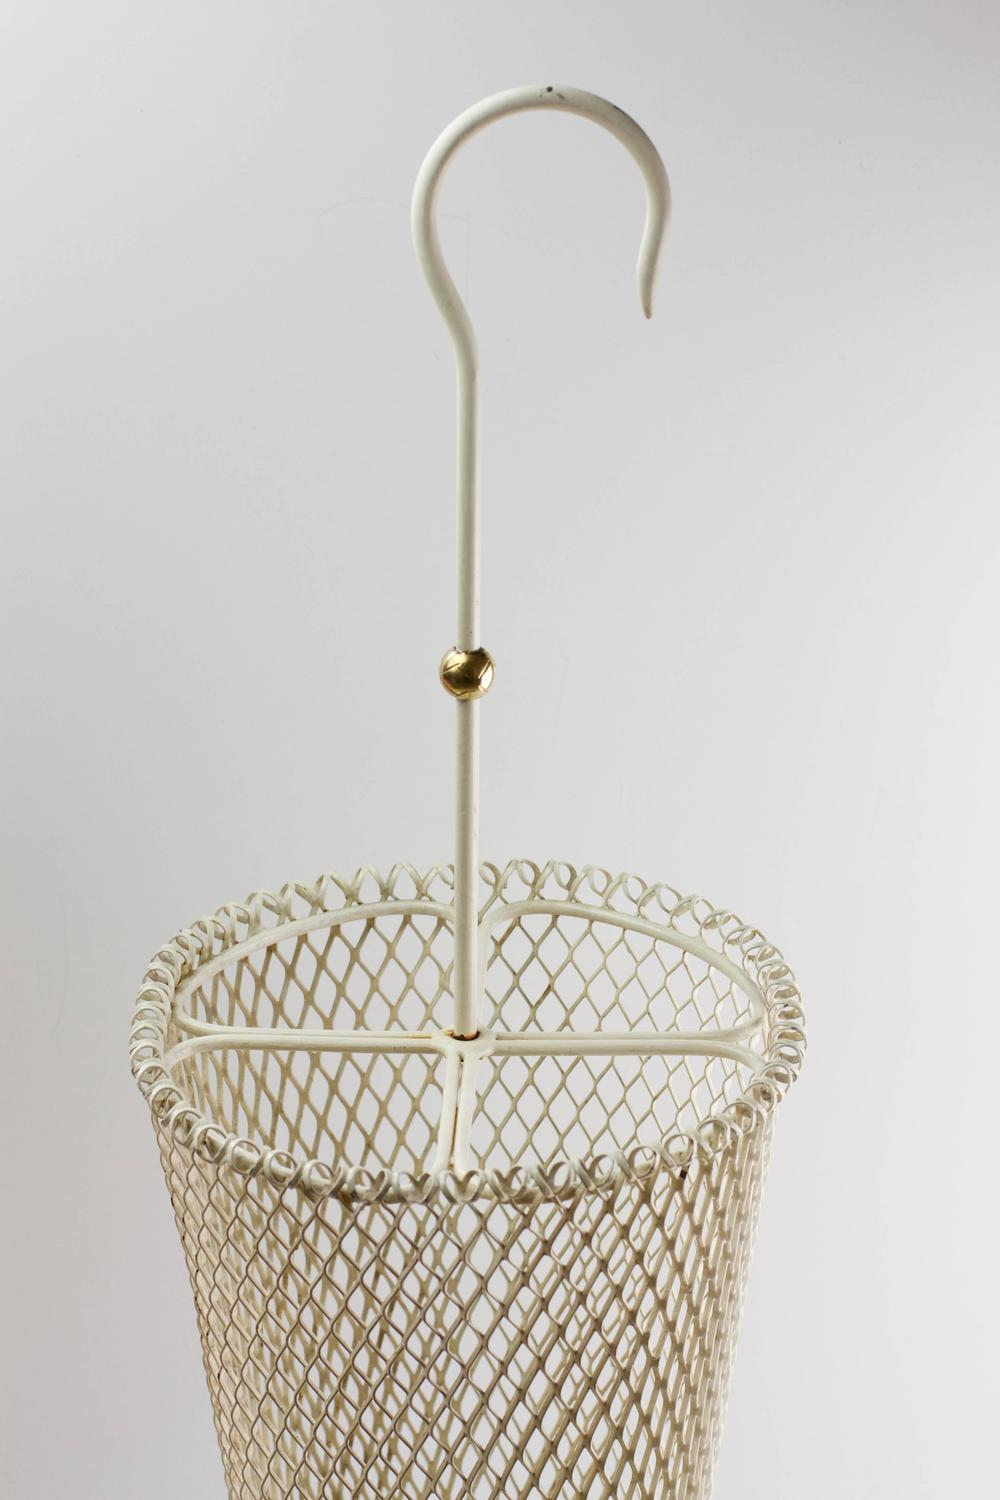 Steel Wire For Umbrella : S mathieu mategot french white perforated metal